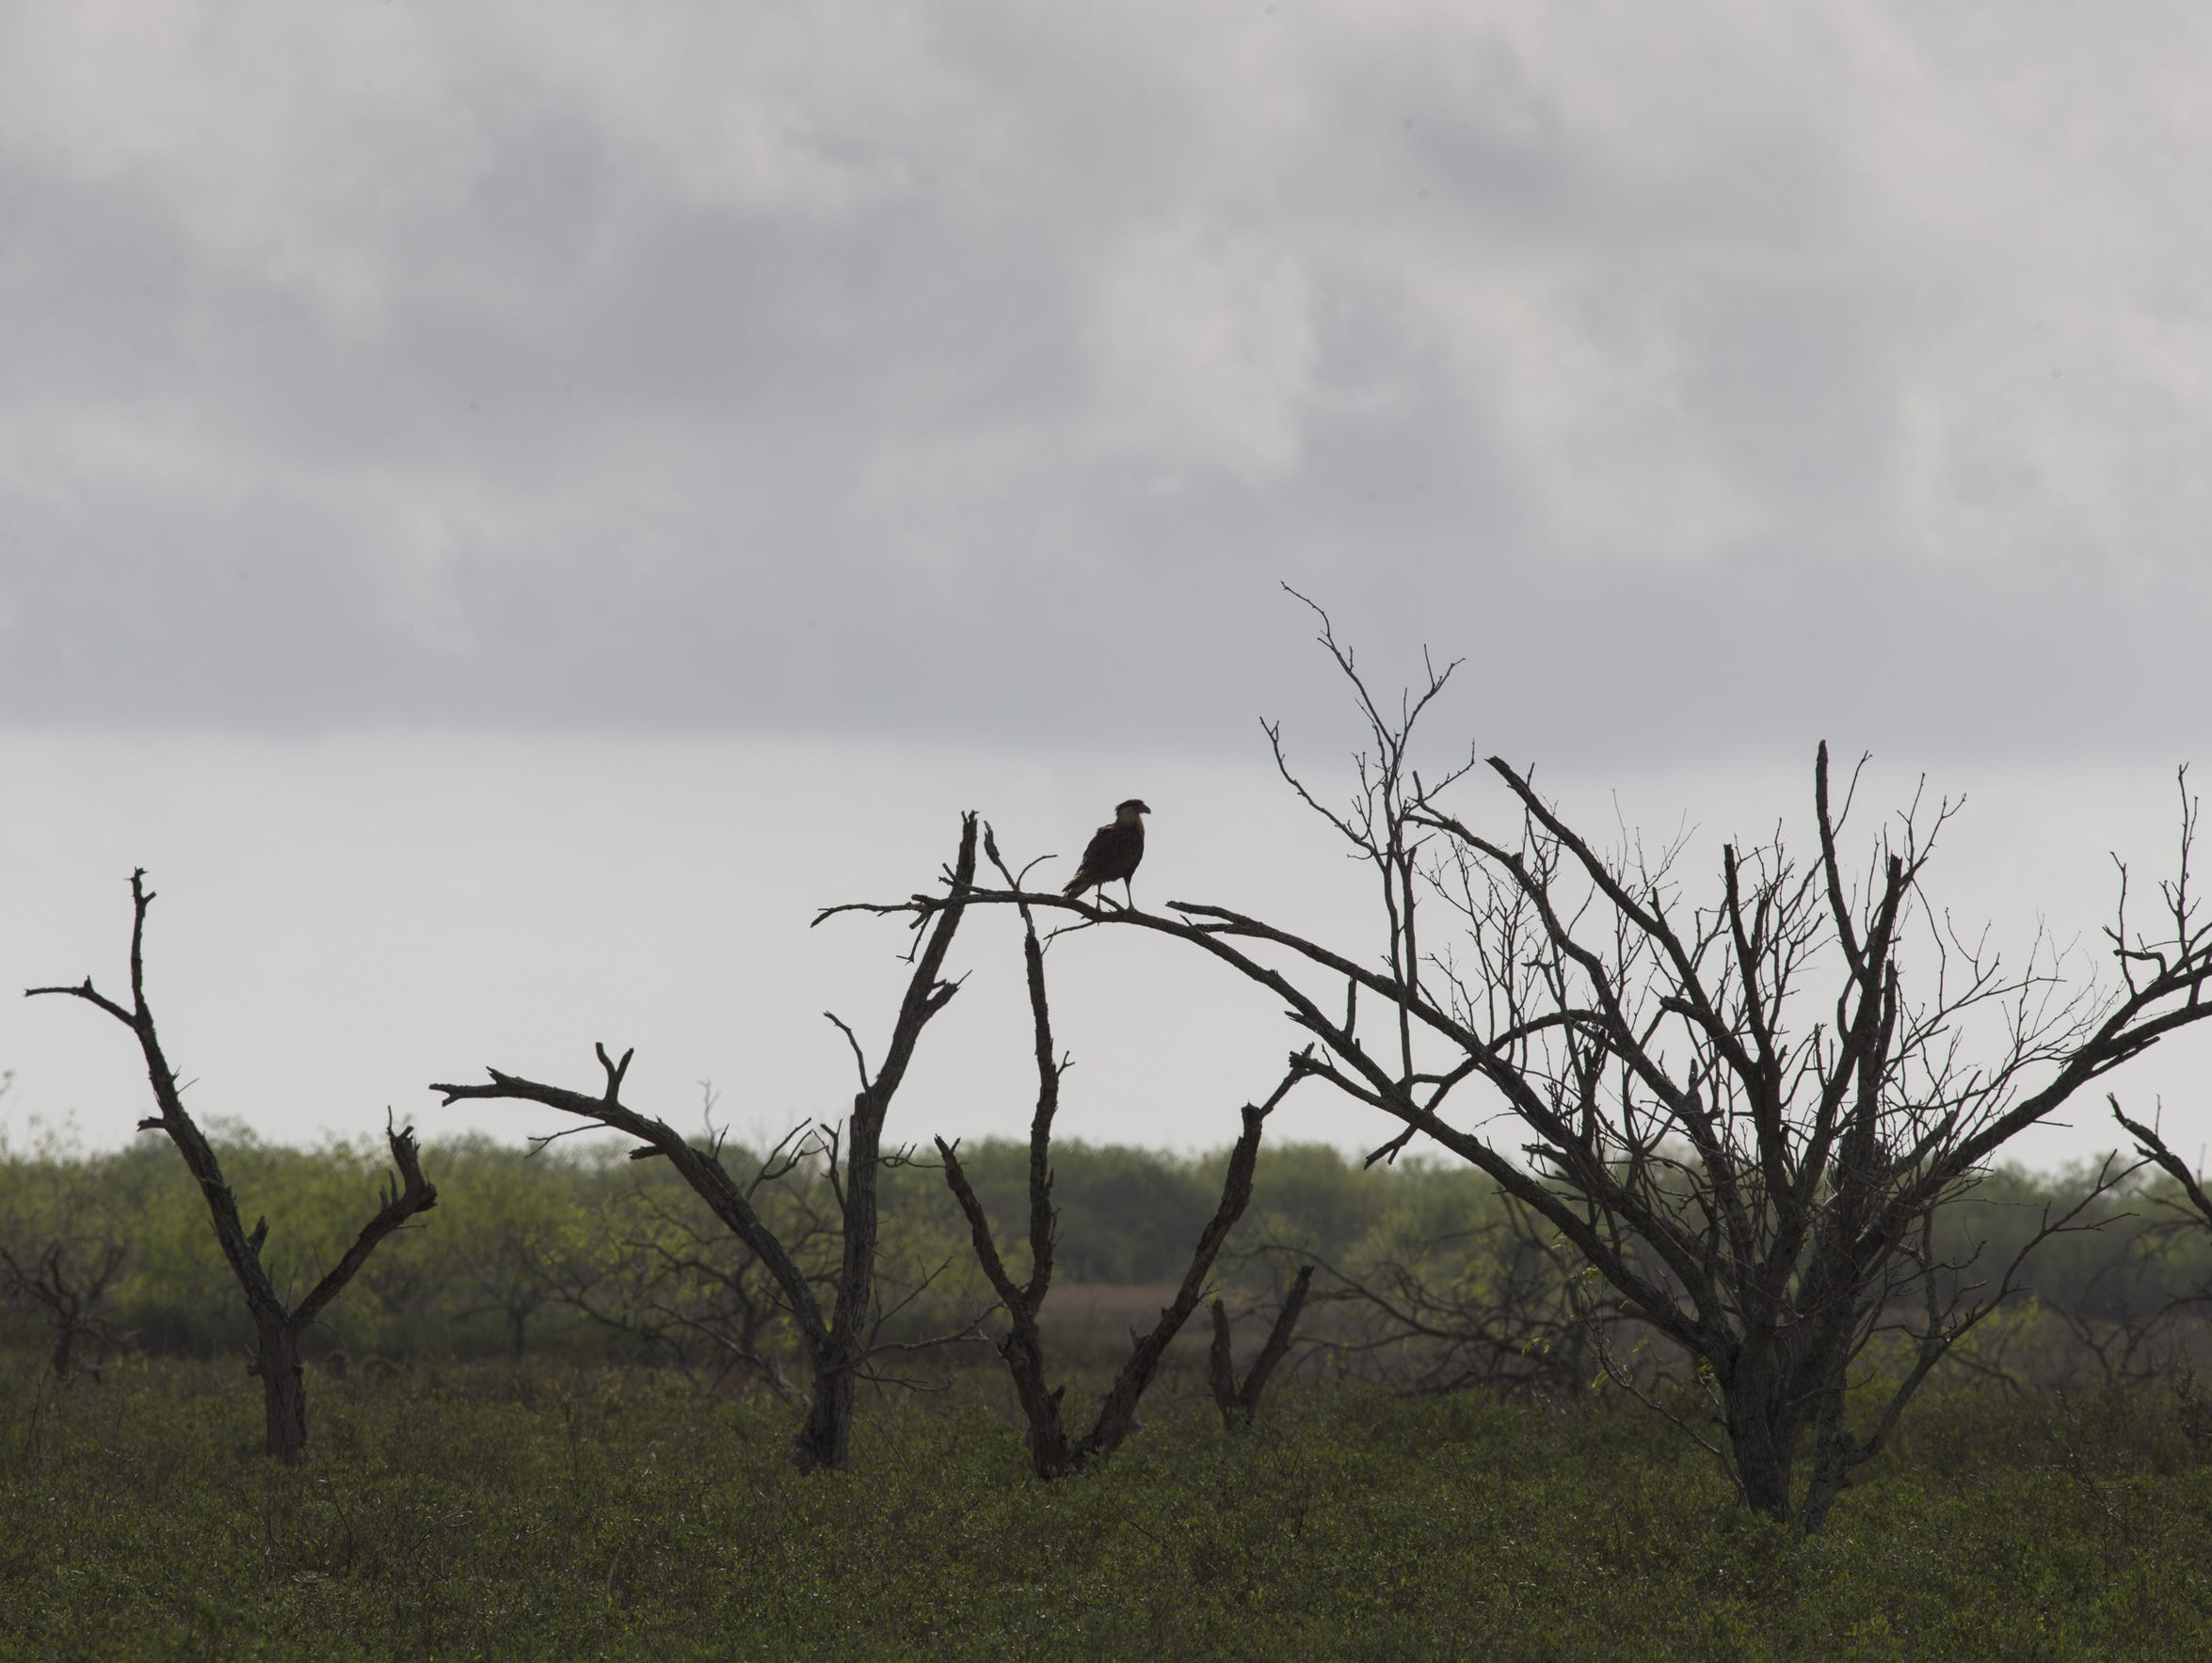 A caracara perched in a tree at Cactus Creek Ranch